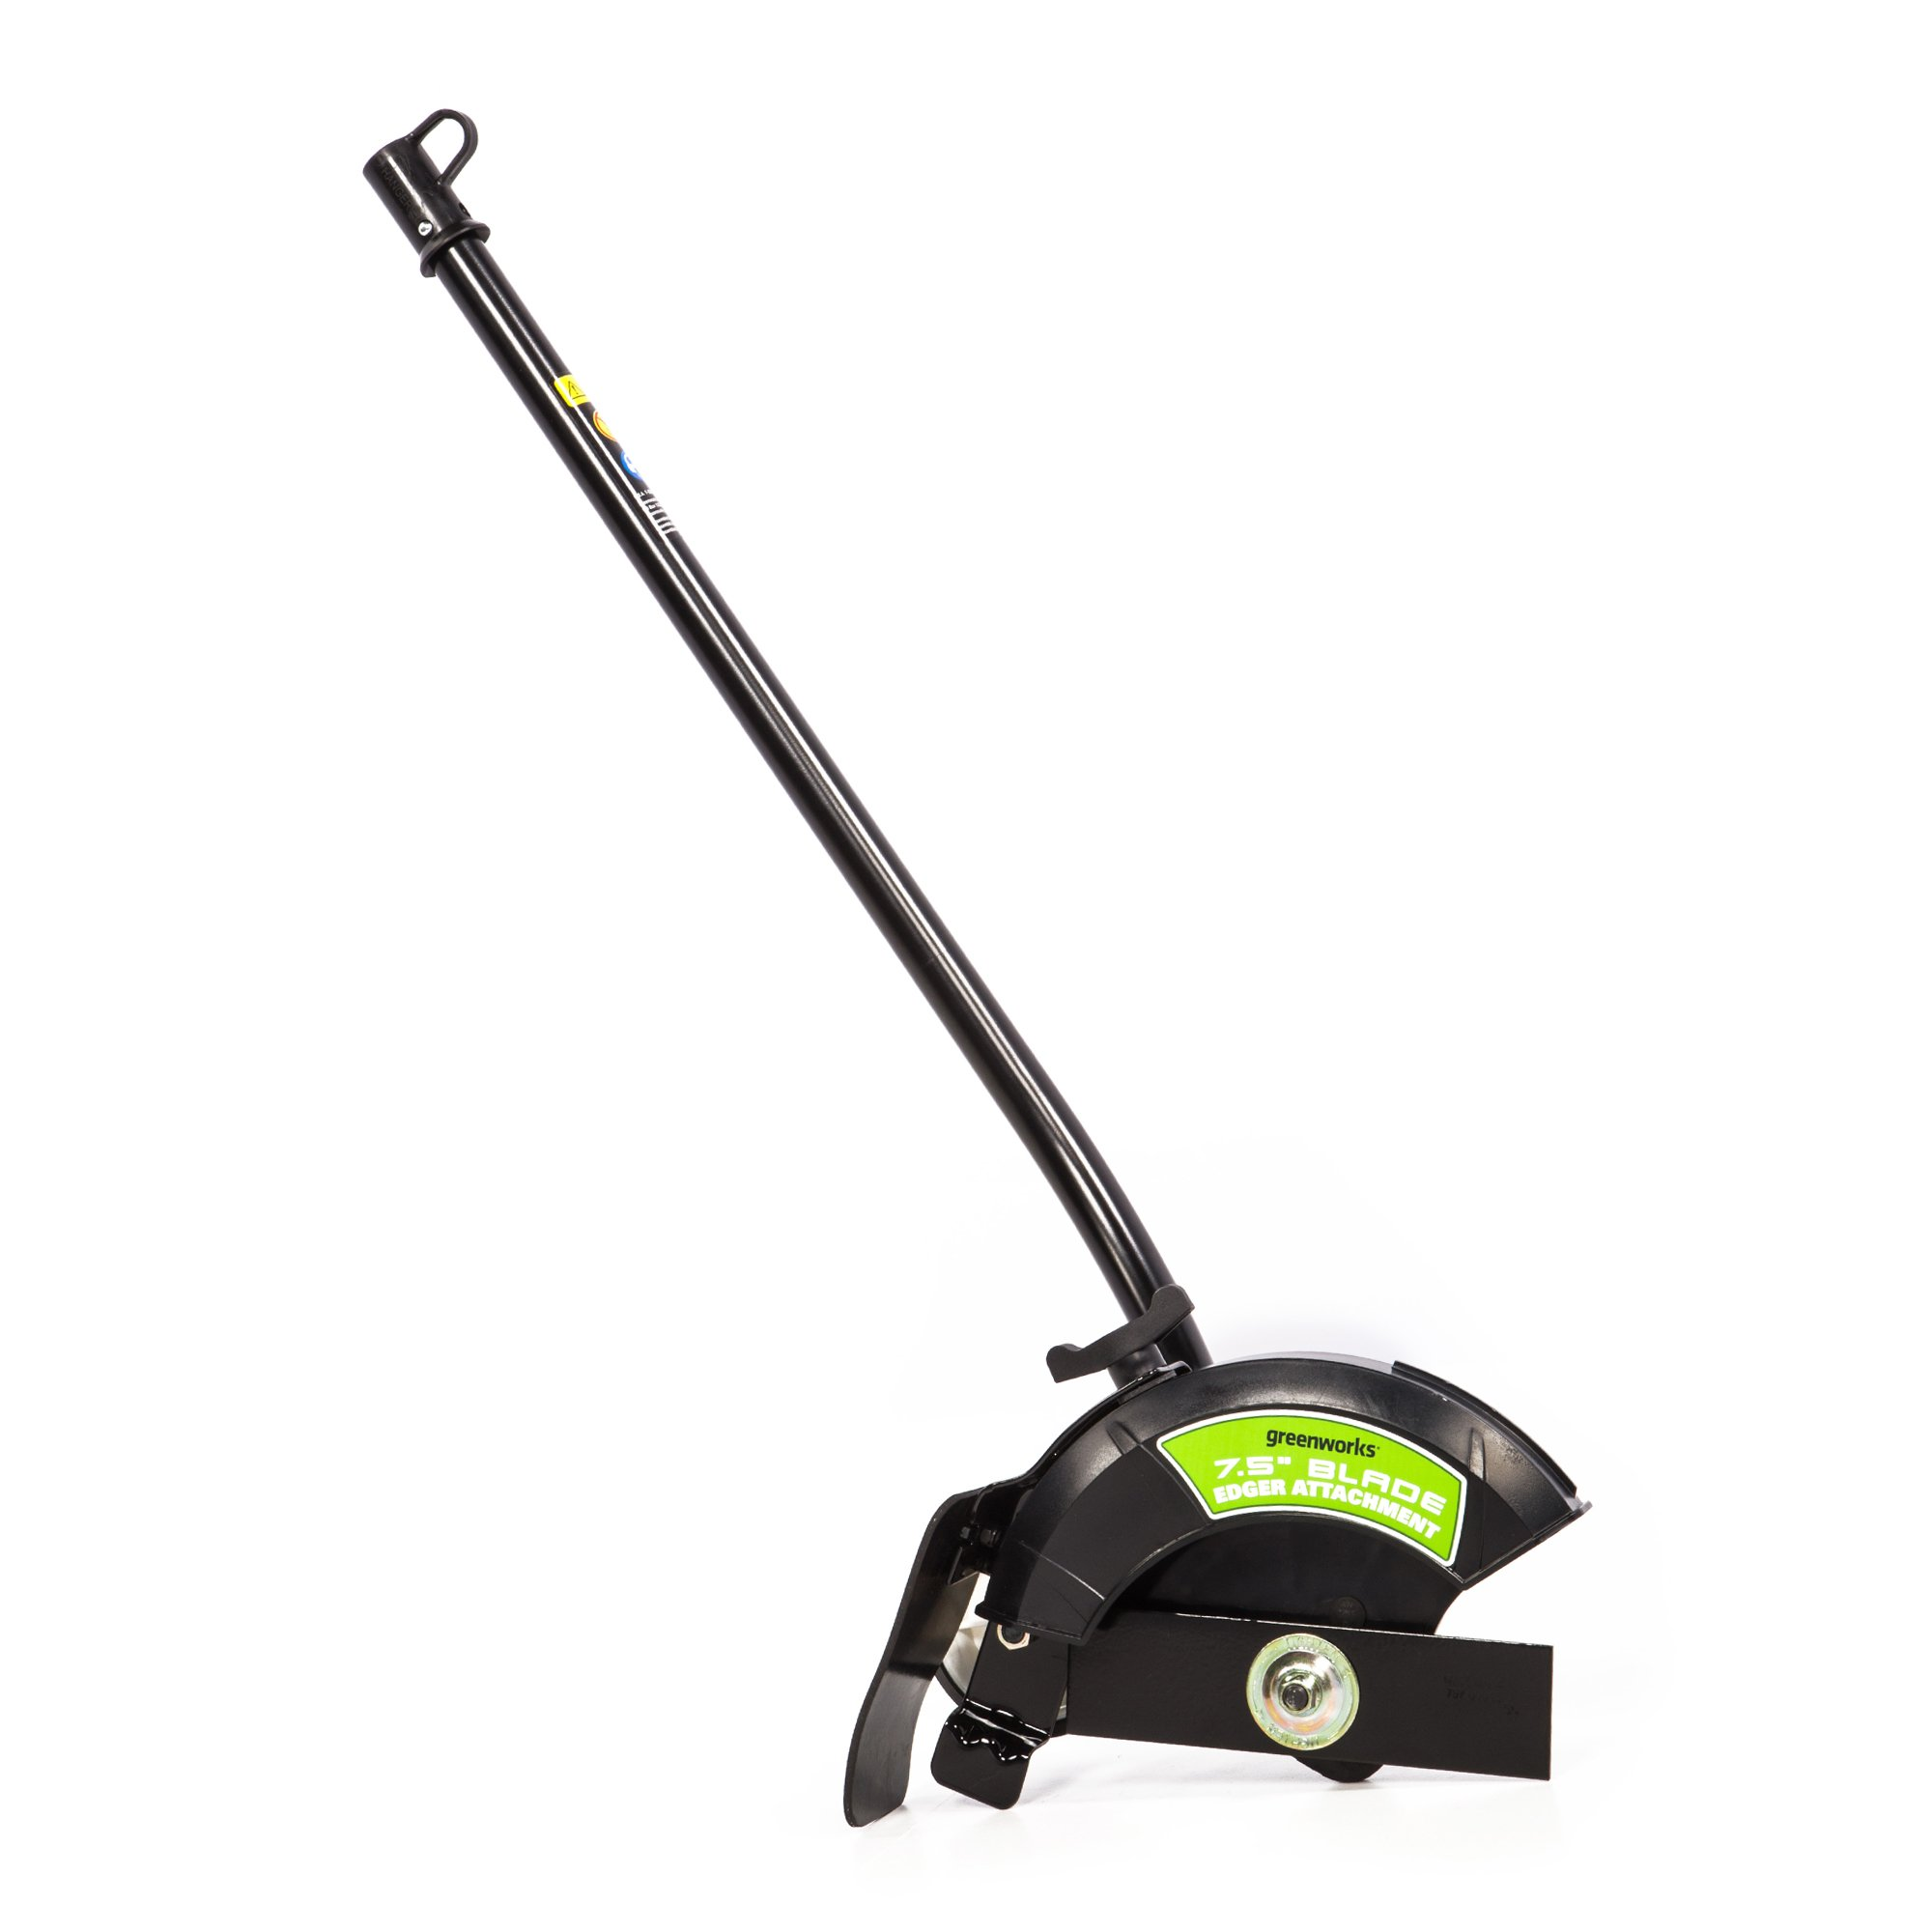 Greenworks EDA75 7.5'' Edger Attachment, Black and Green by Greenworks